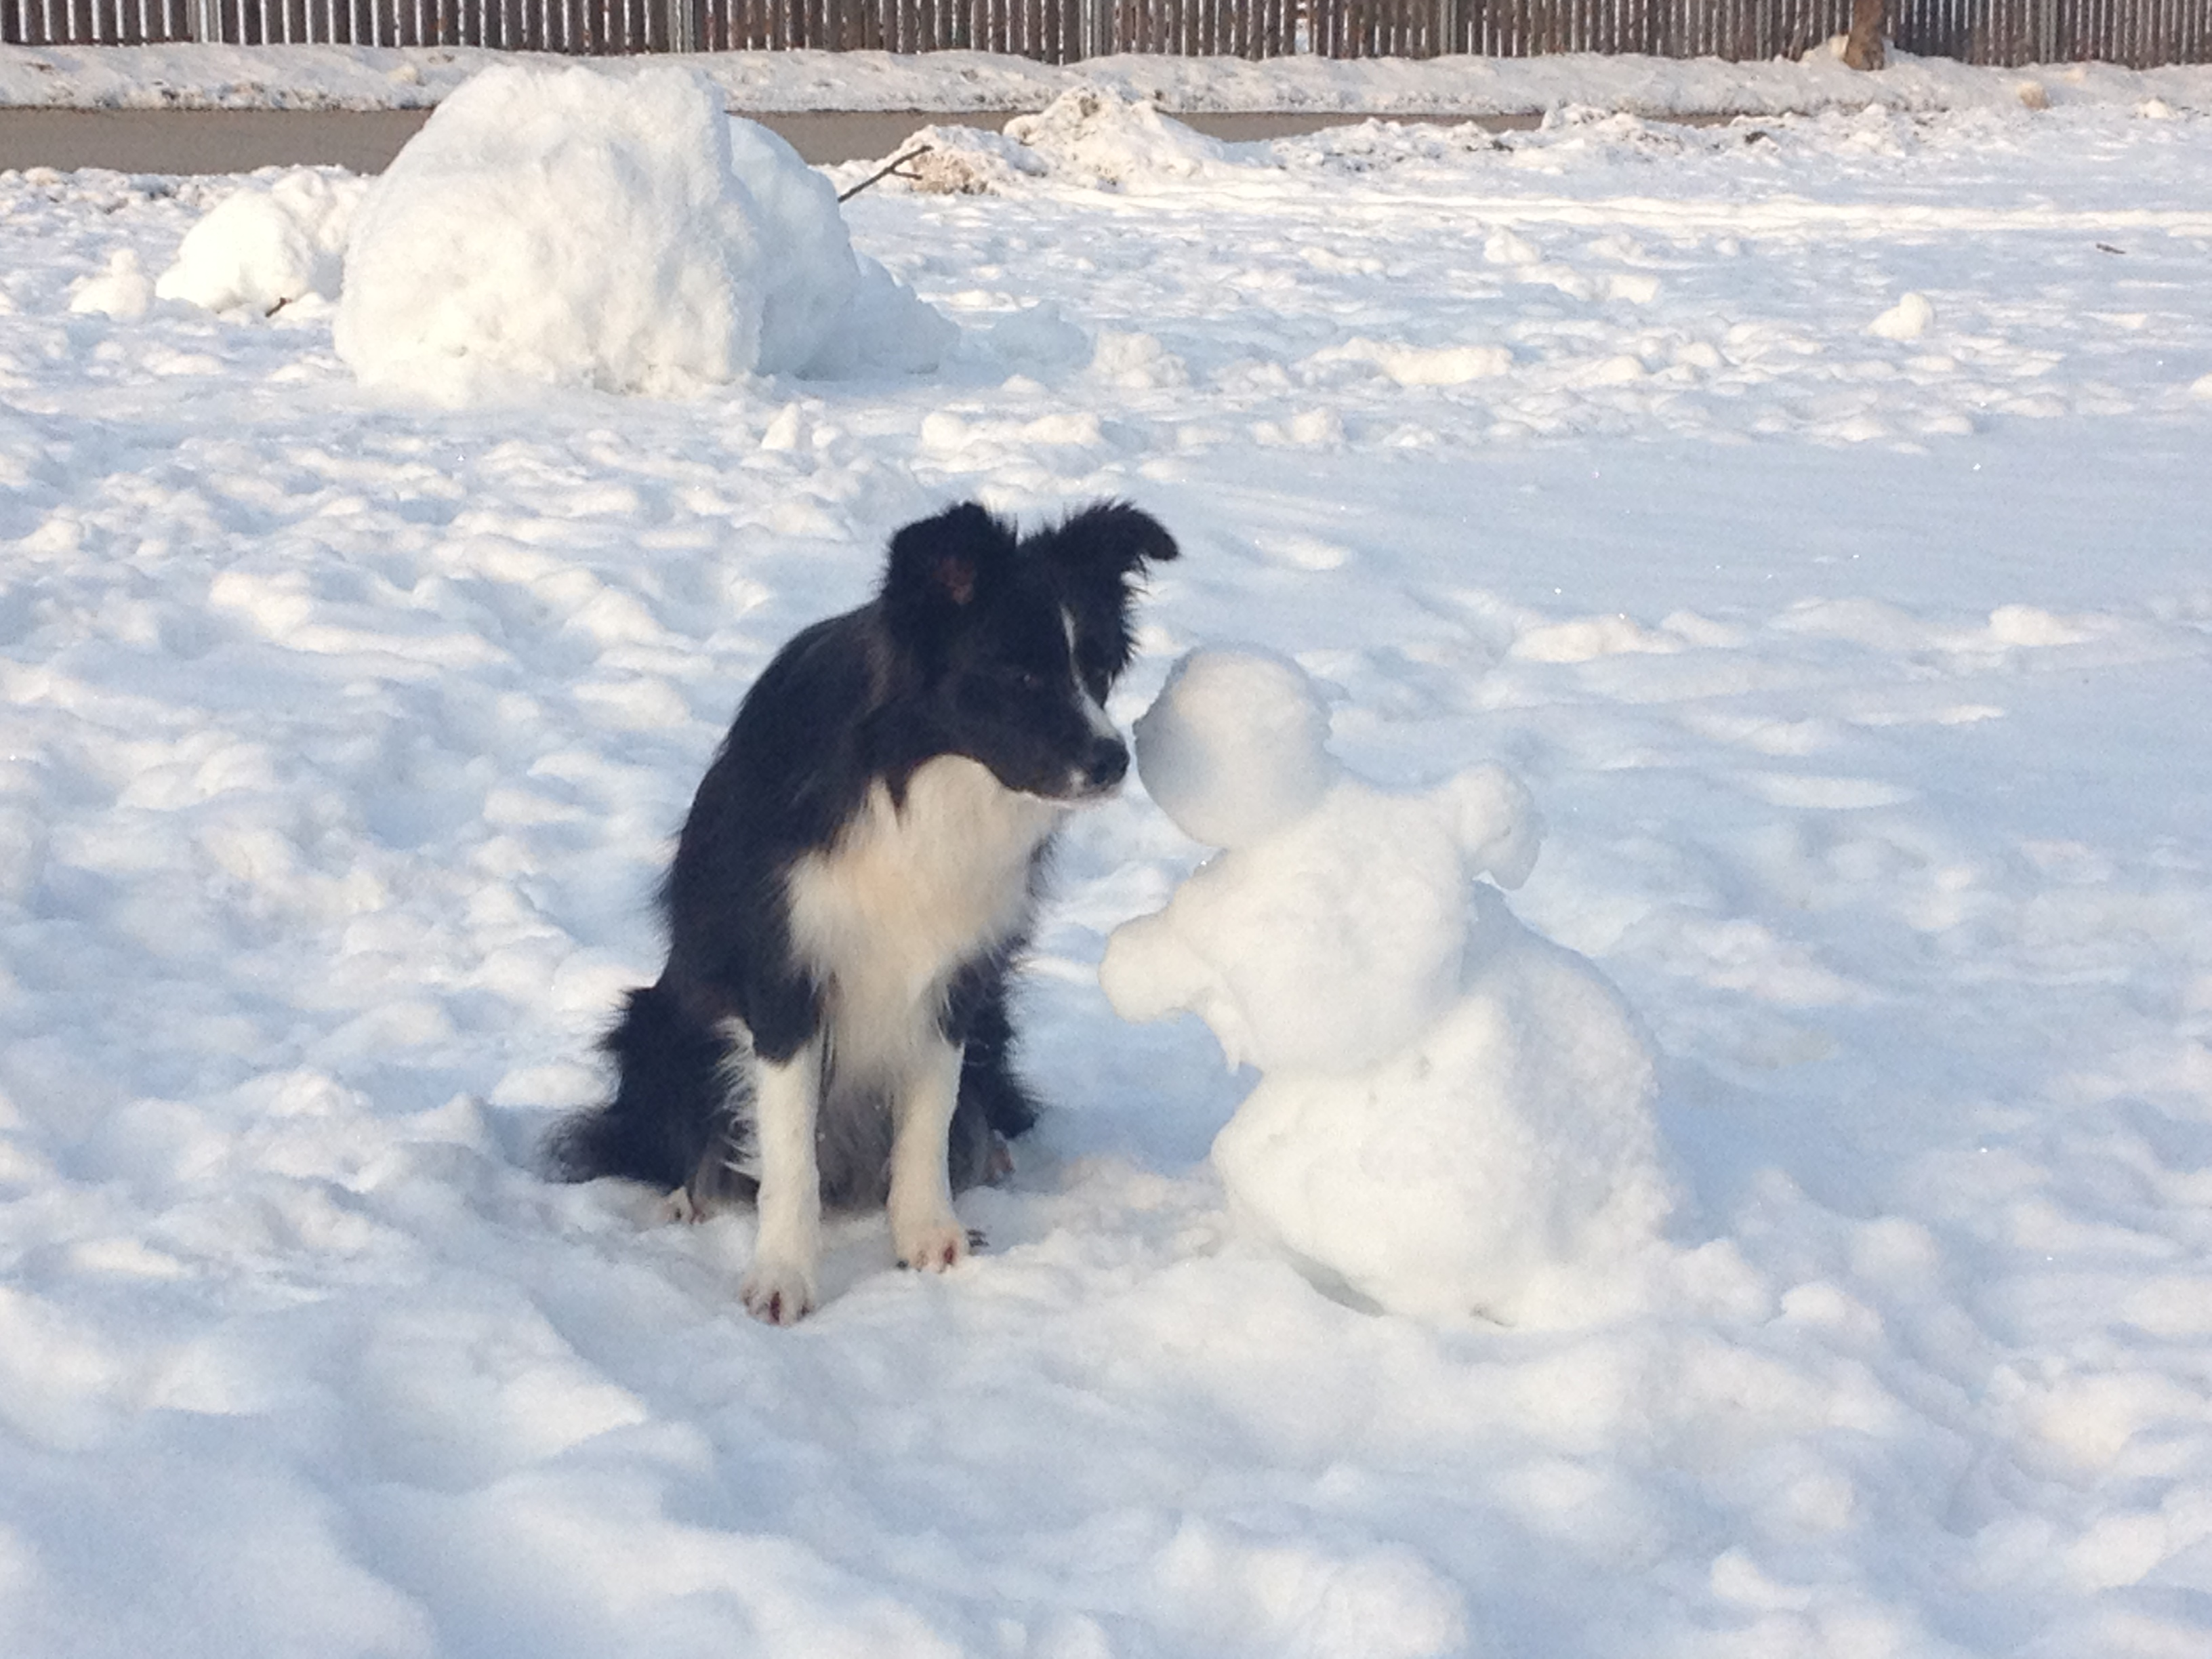 Lucy and the Snowman.